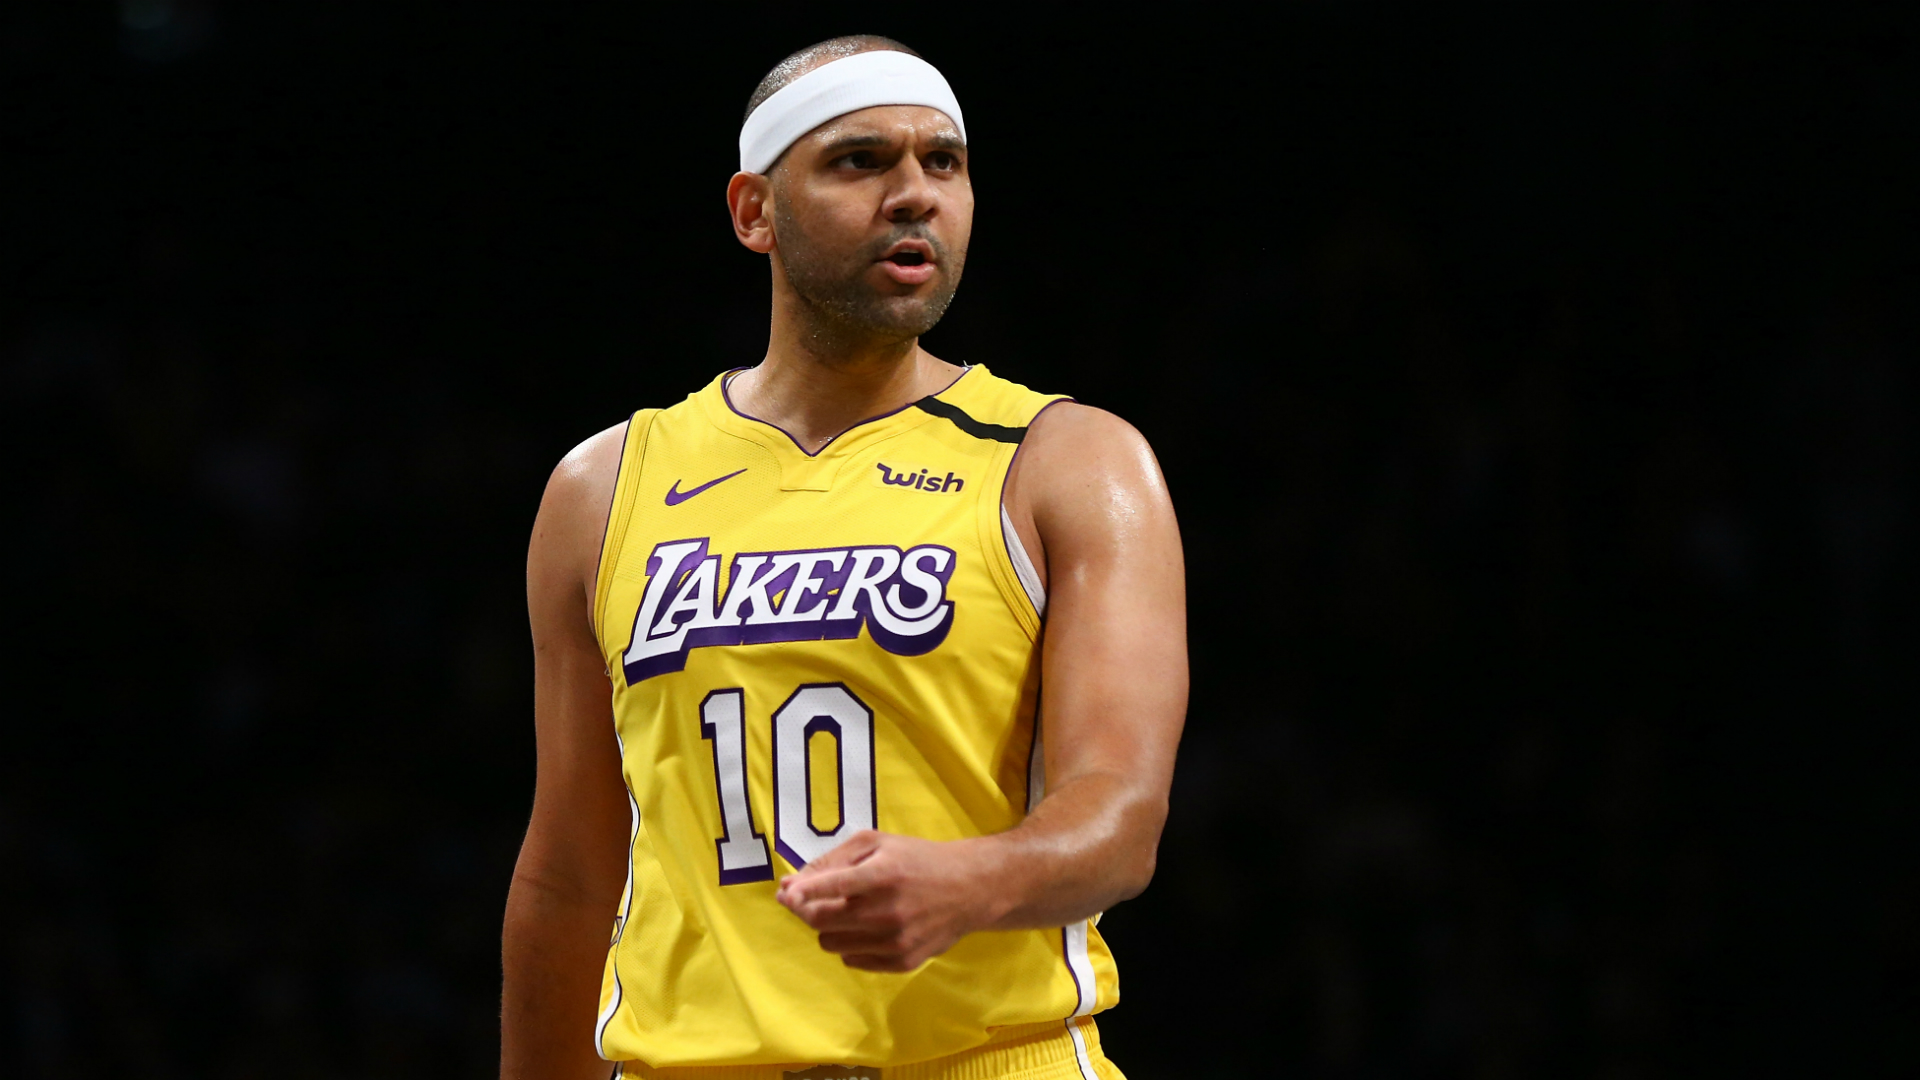 Lakers' Jared Dudley claims NBA playoffs could go as late as October